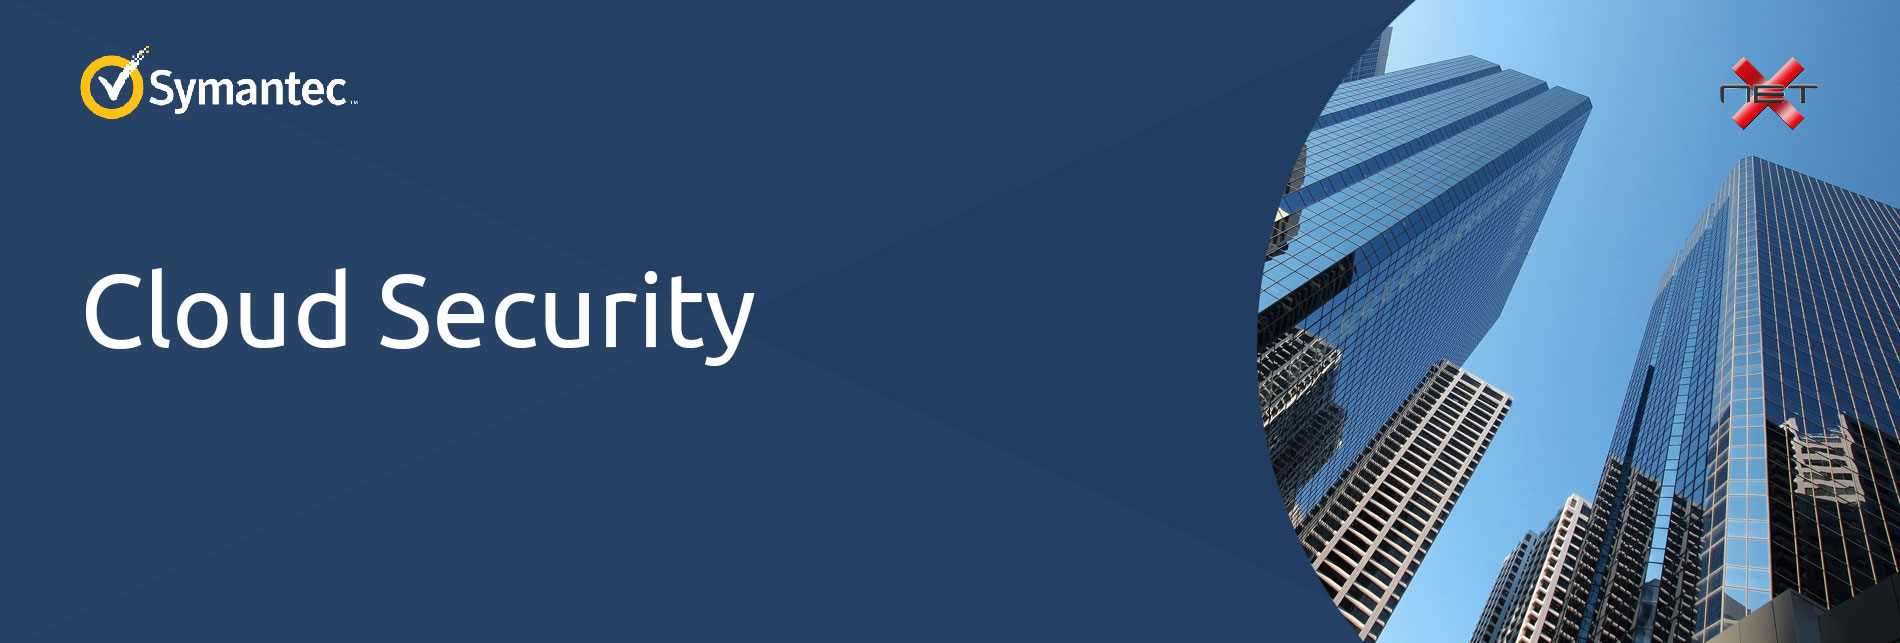 symantec-cloud-security-with netx banner